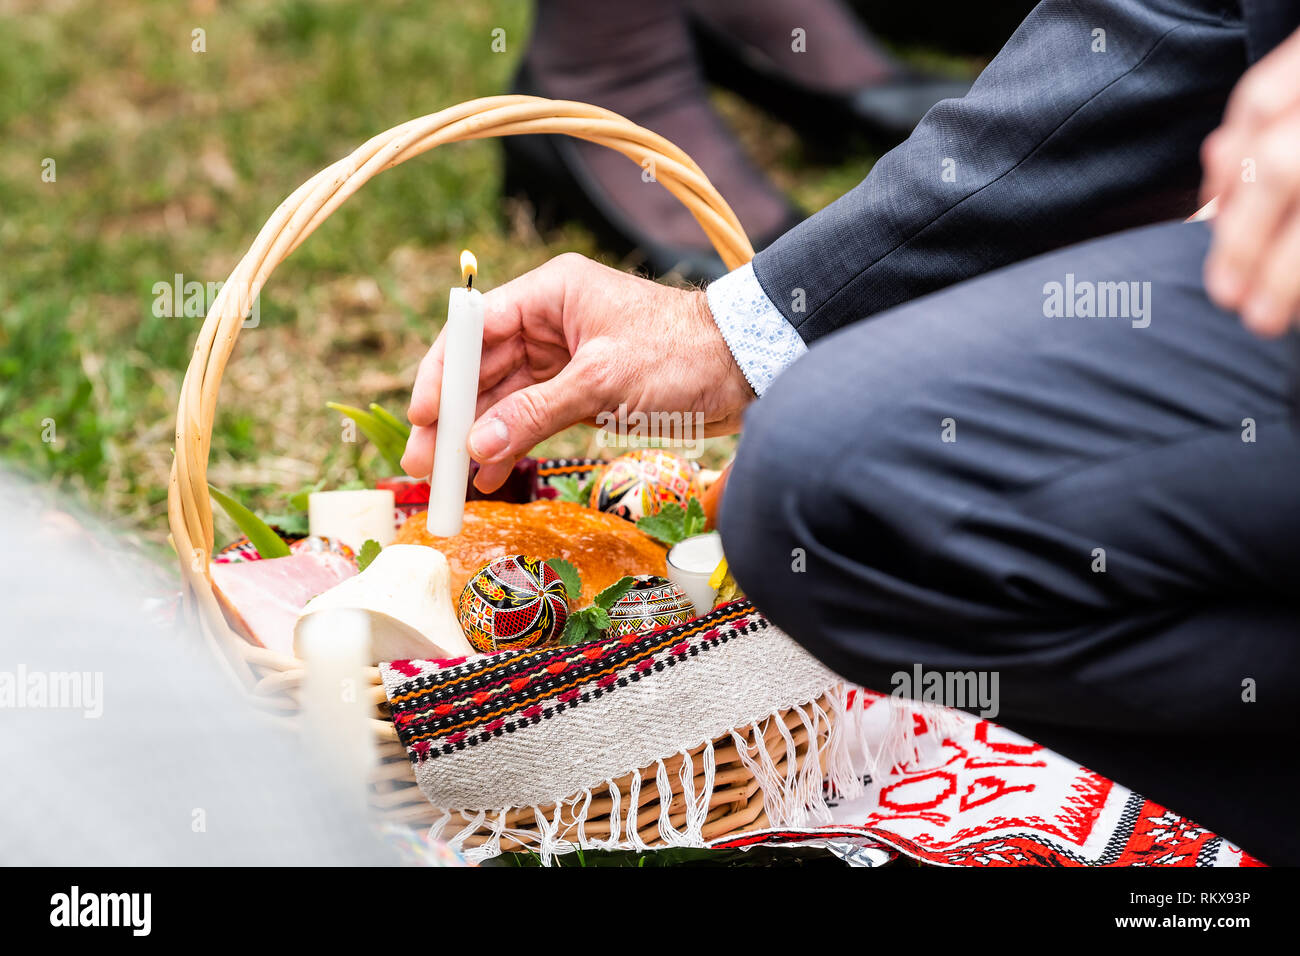 Ukrainian Orthodox Easter Blessing Wicker Straw Baskets With Senior Man Hand Placing Candle On Grass Ground Outside At Church With Flame Stock Photo Alamy